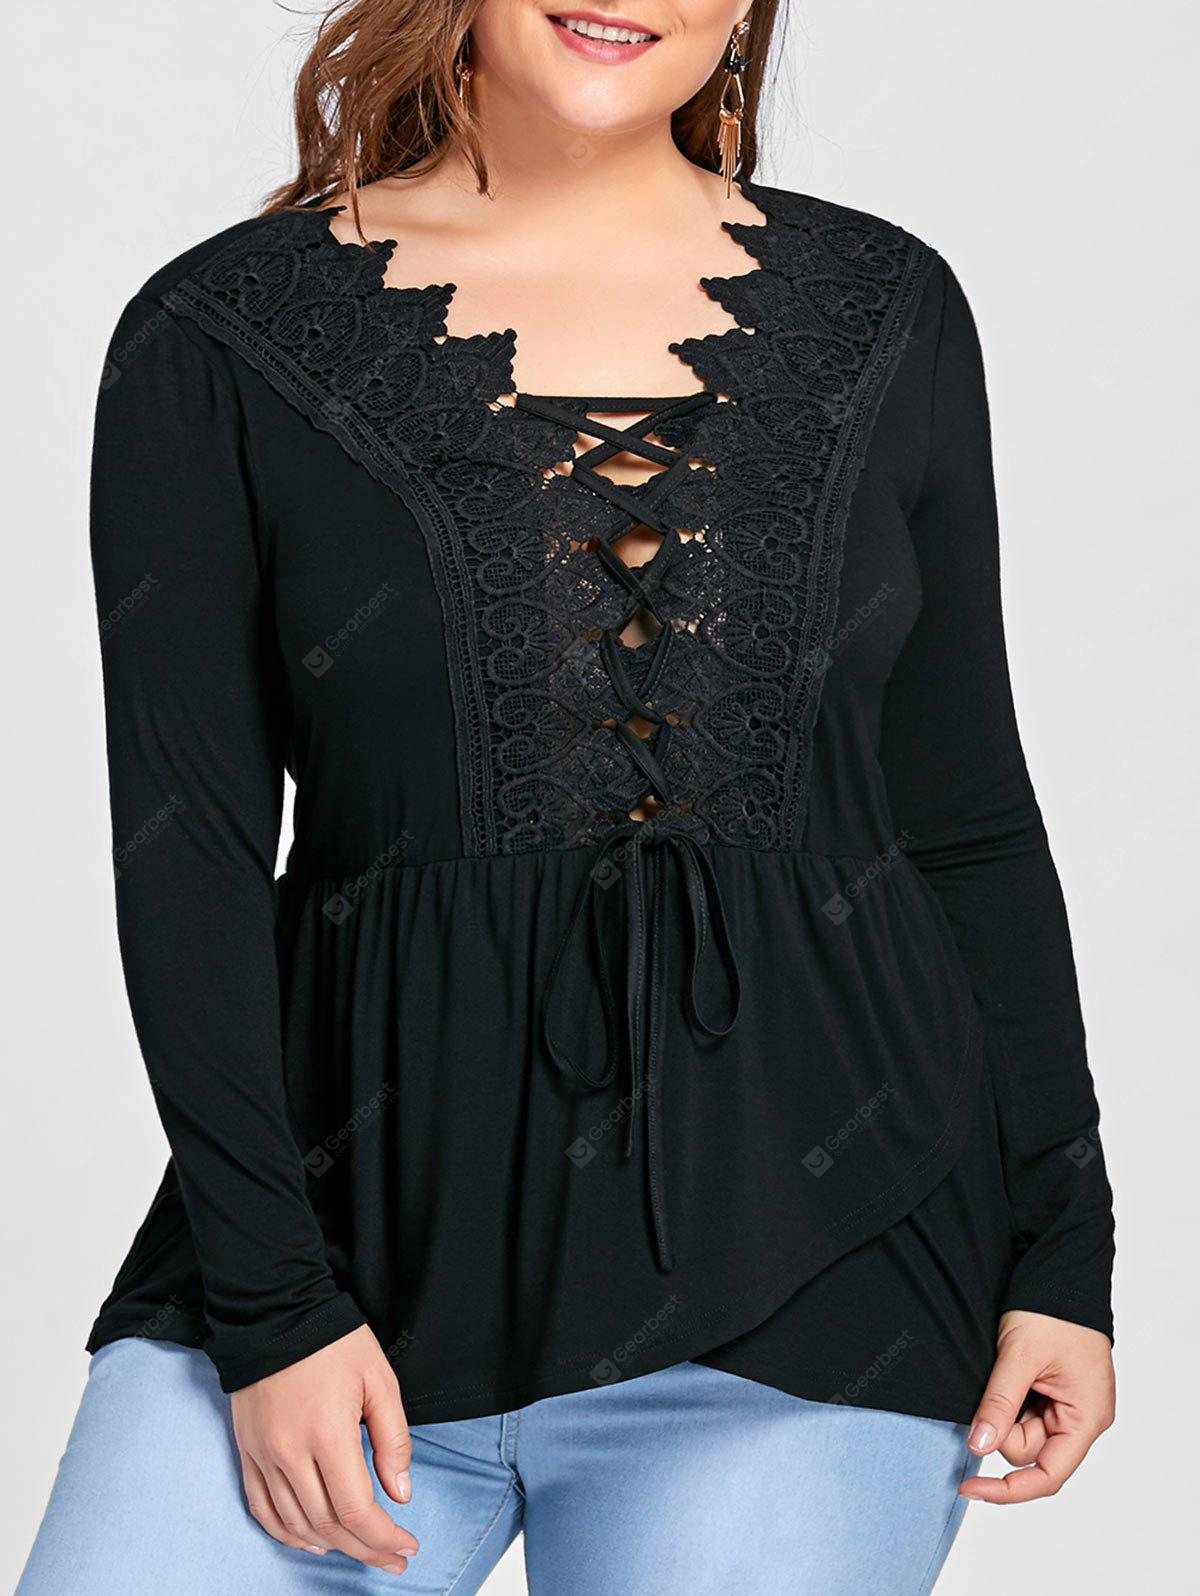 Lace Panel Lace Up Asymmetric Long Sleeve T-shirt